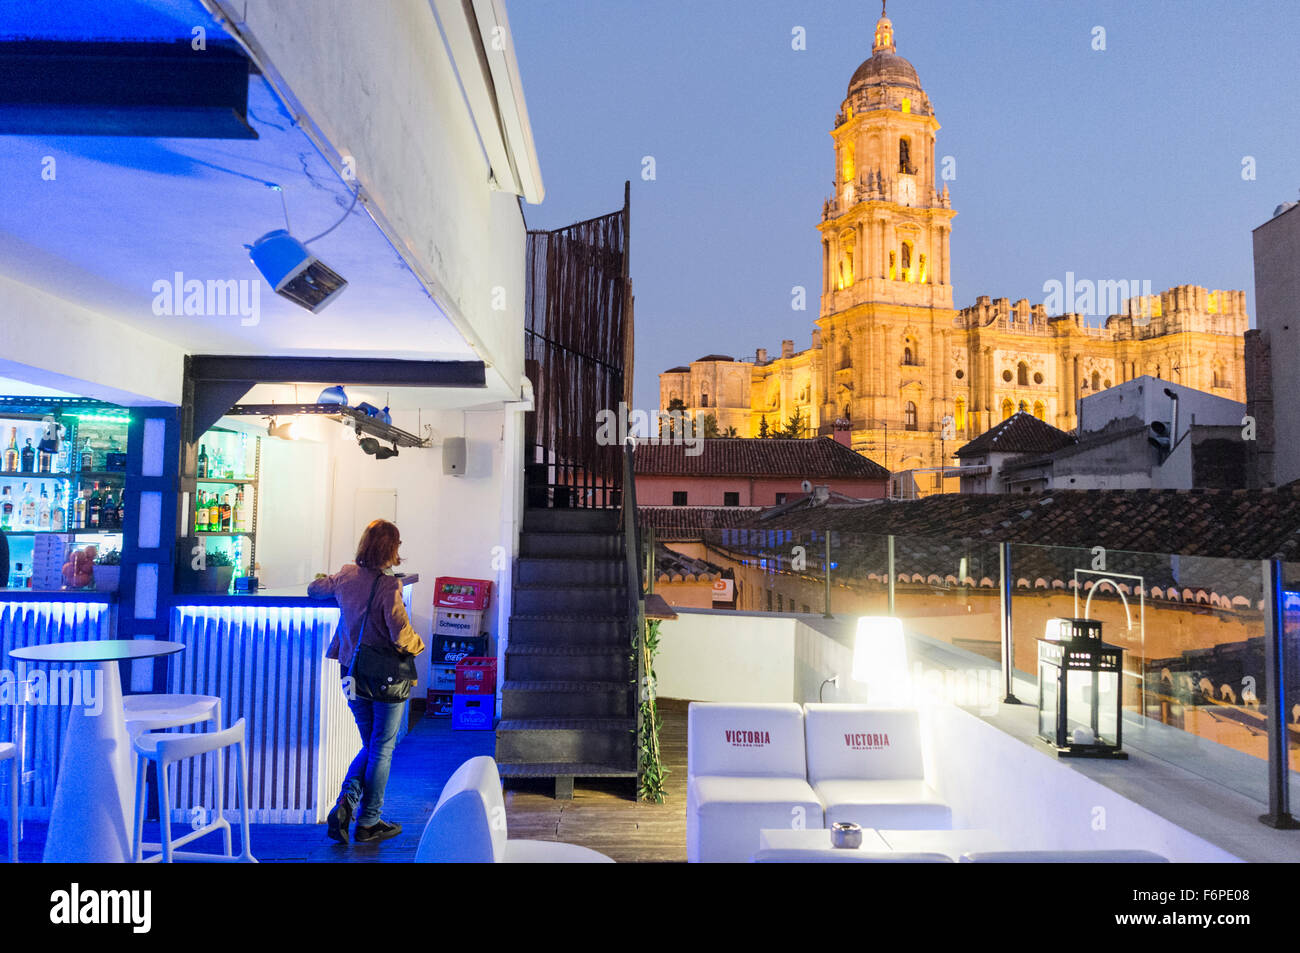 Woman at Chinitas Urban Hostel rooftop terrace bar with illuminated Cathedral in background. Malaga, Andalusia, - Stock Image